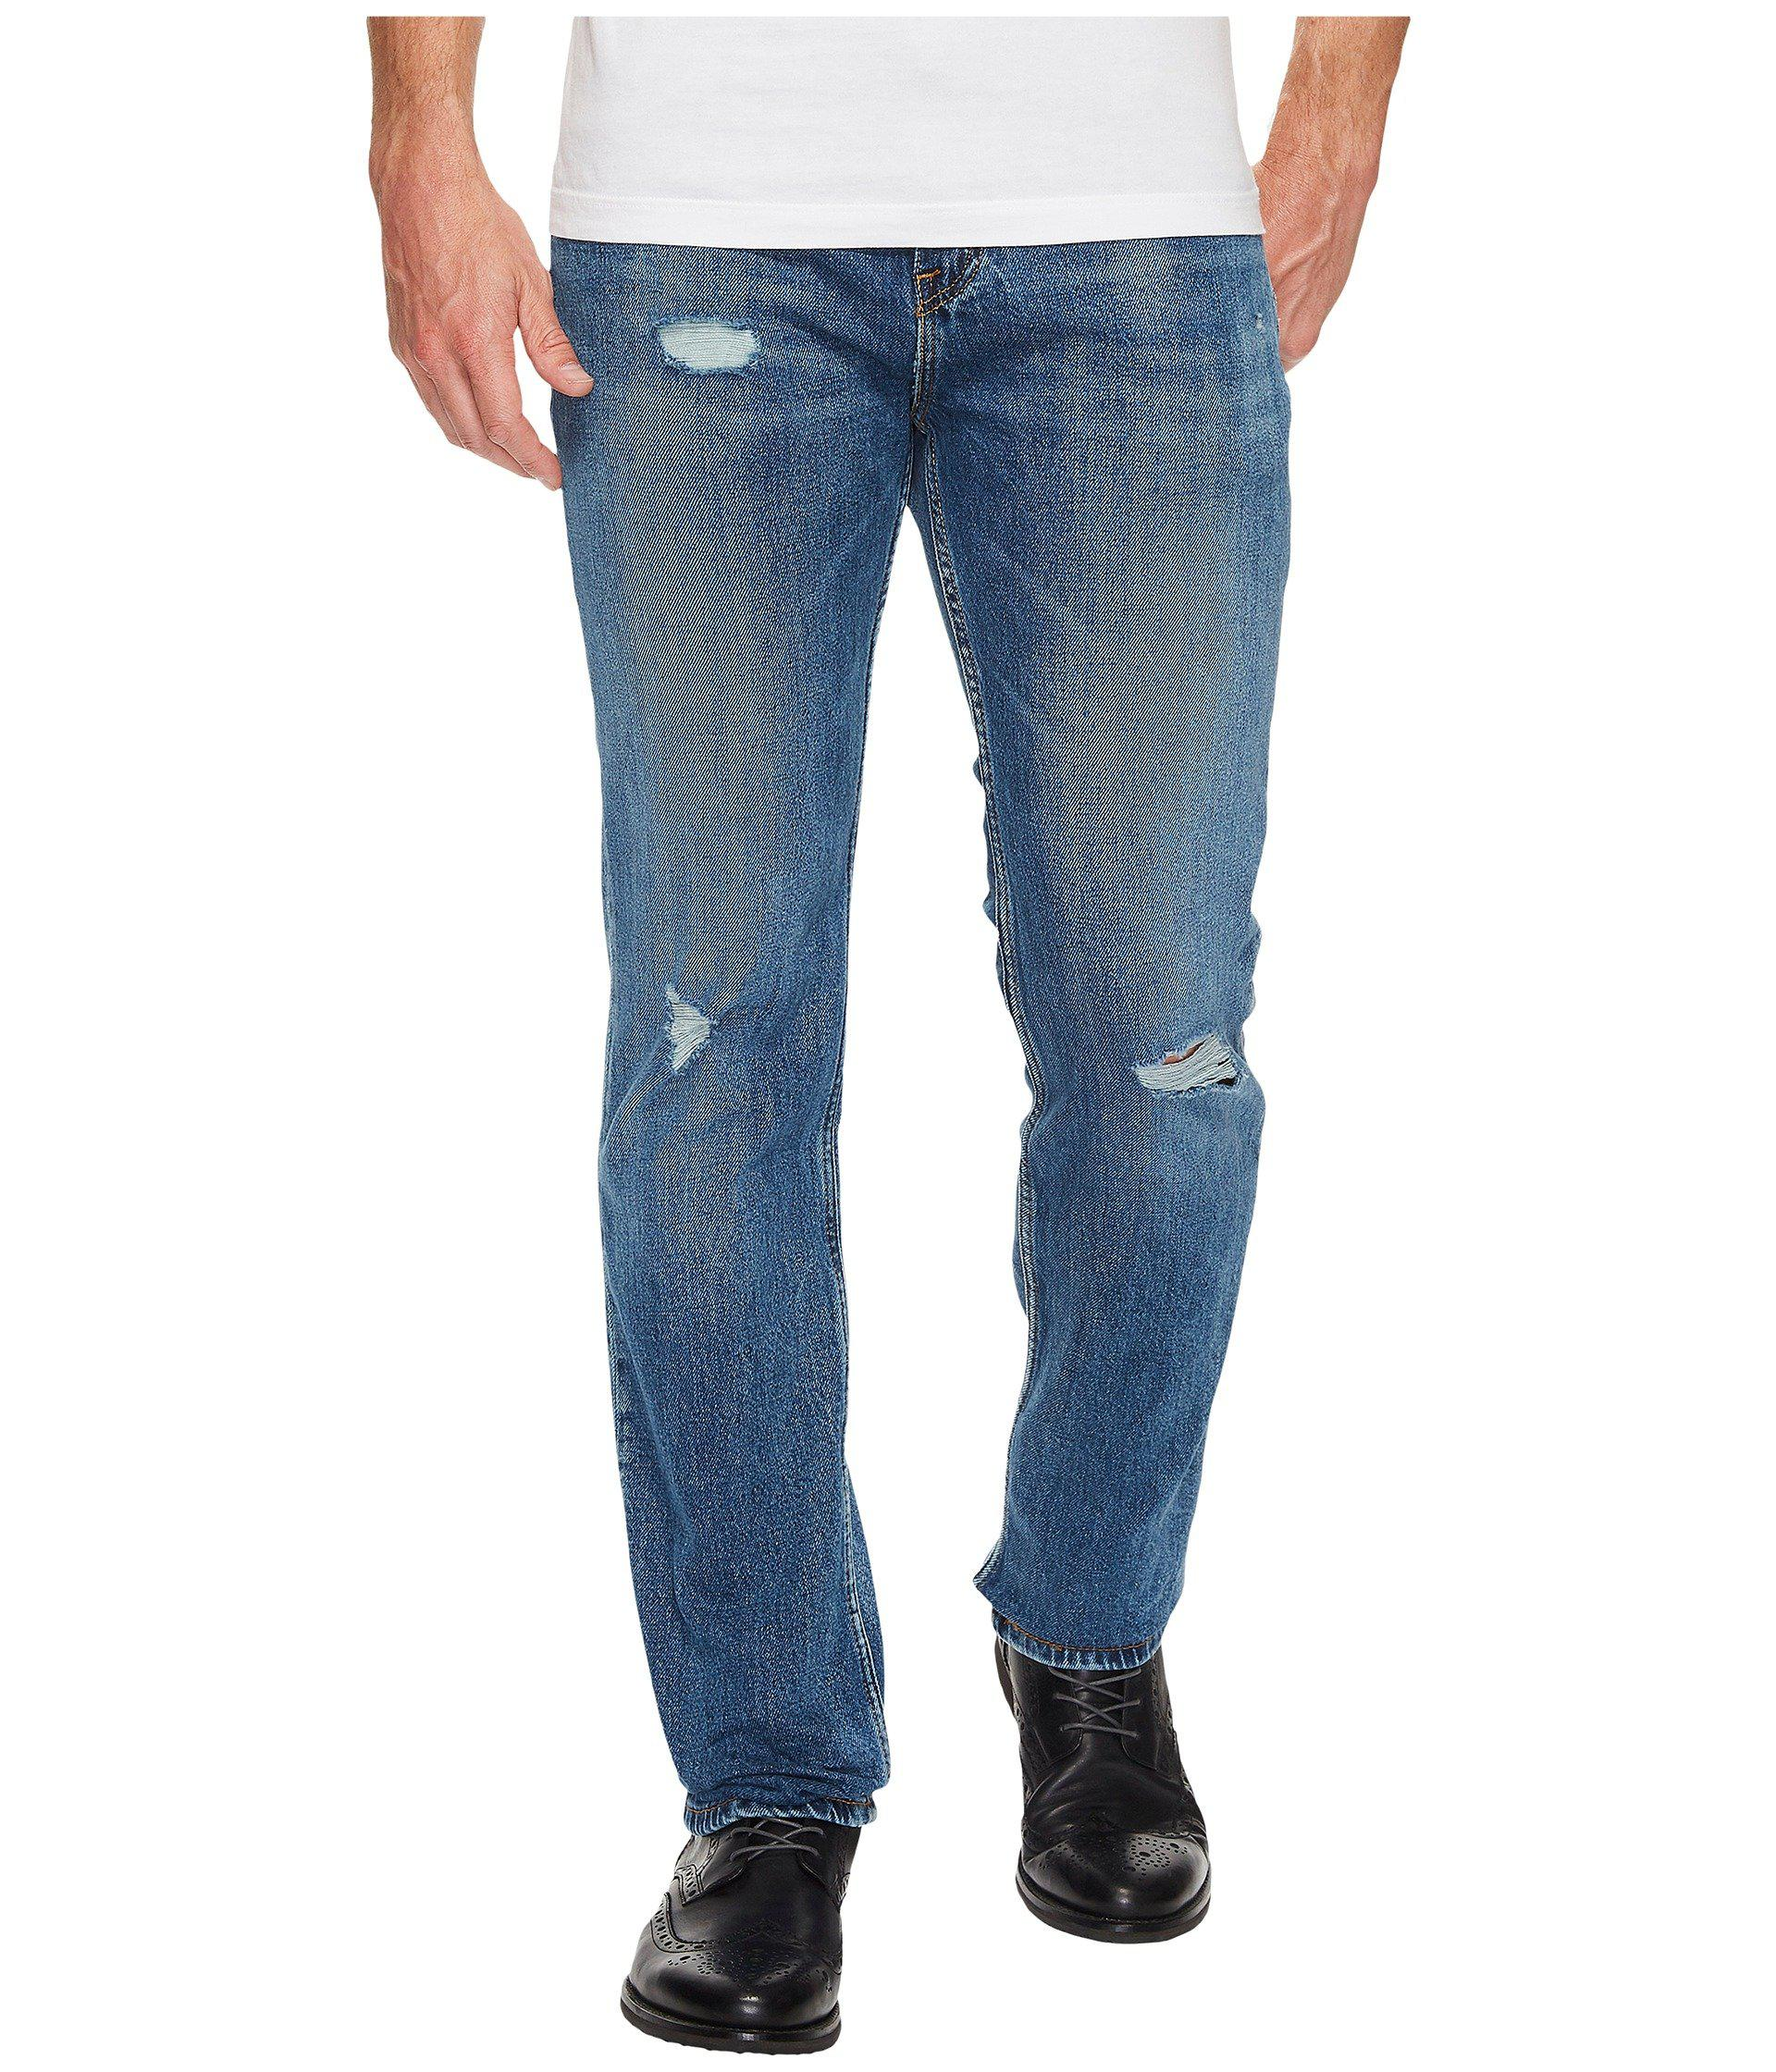 004f9afc184 Lyst - Levi s Levi s(r) Mens 511tm Slim (dark Hollow) Men s Jeans in ...